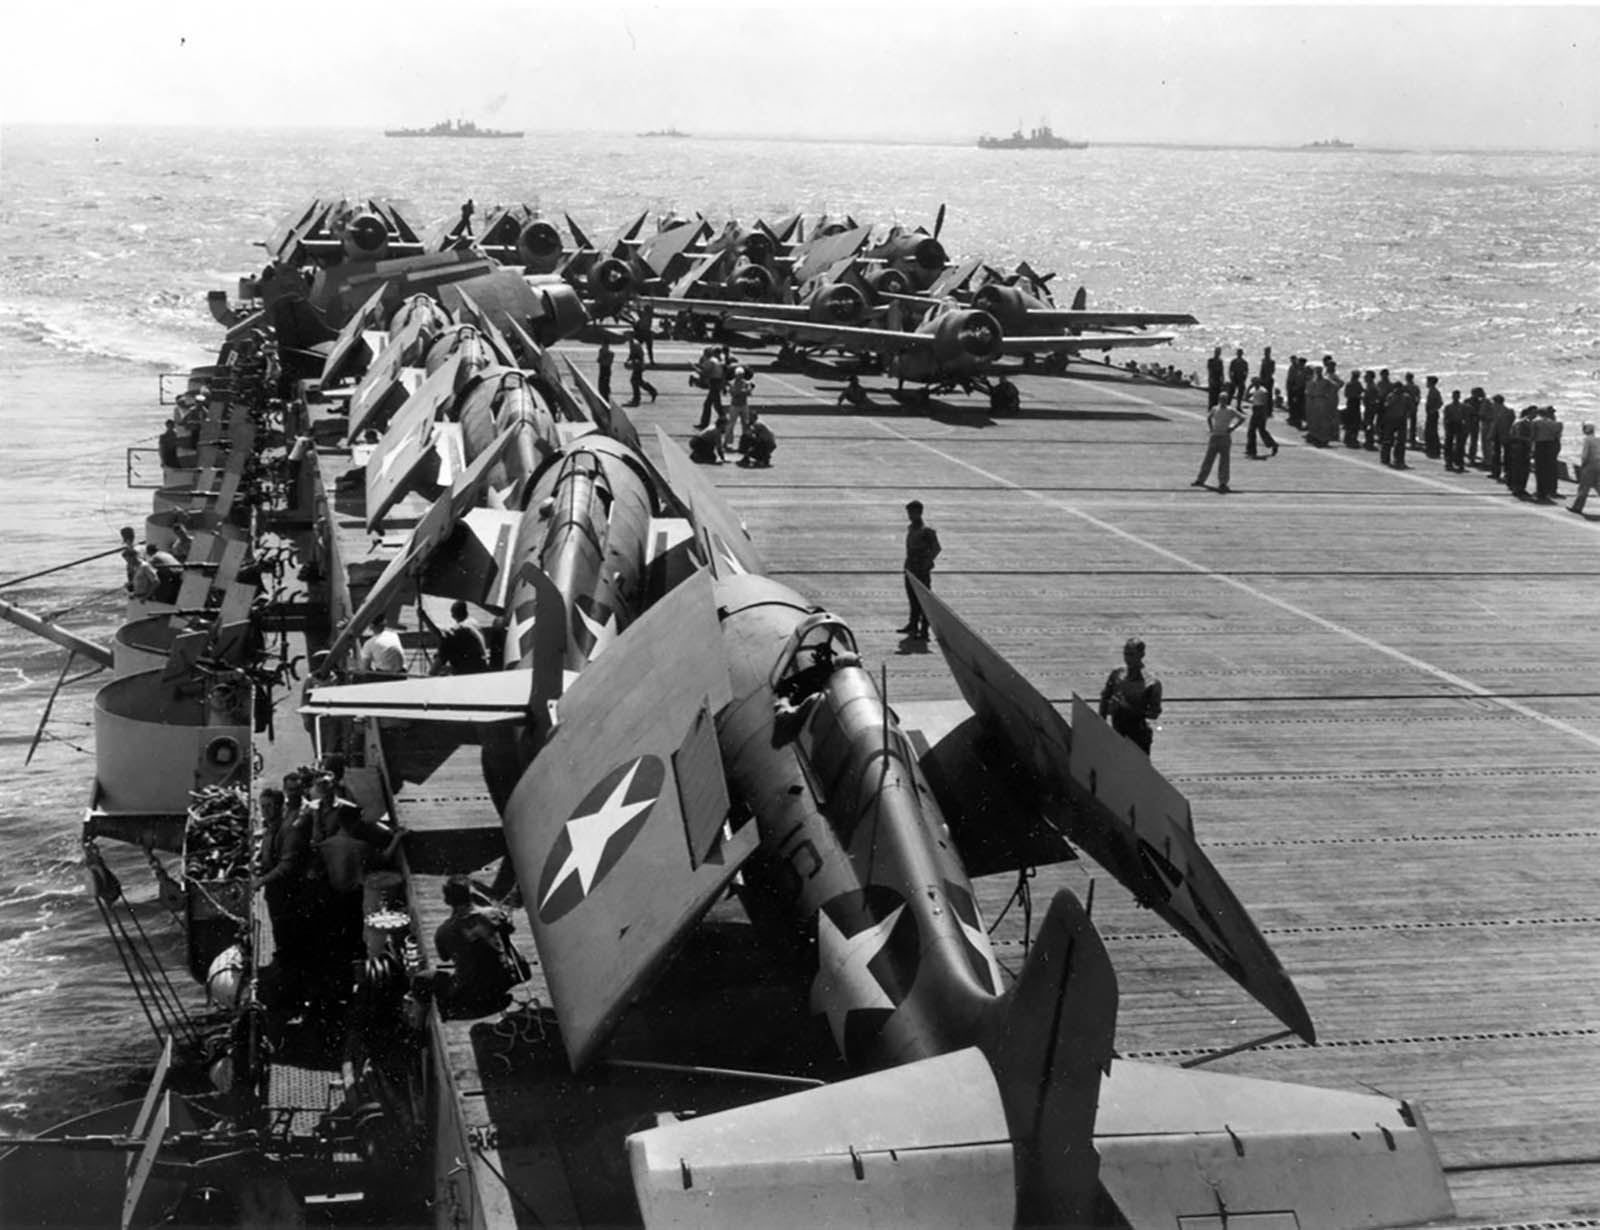 Grumman F4F 4 Wildcat Black 16 and others waiting inline to take off 01